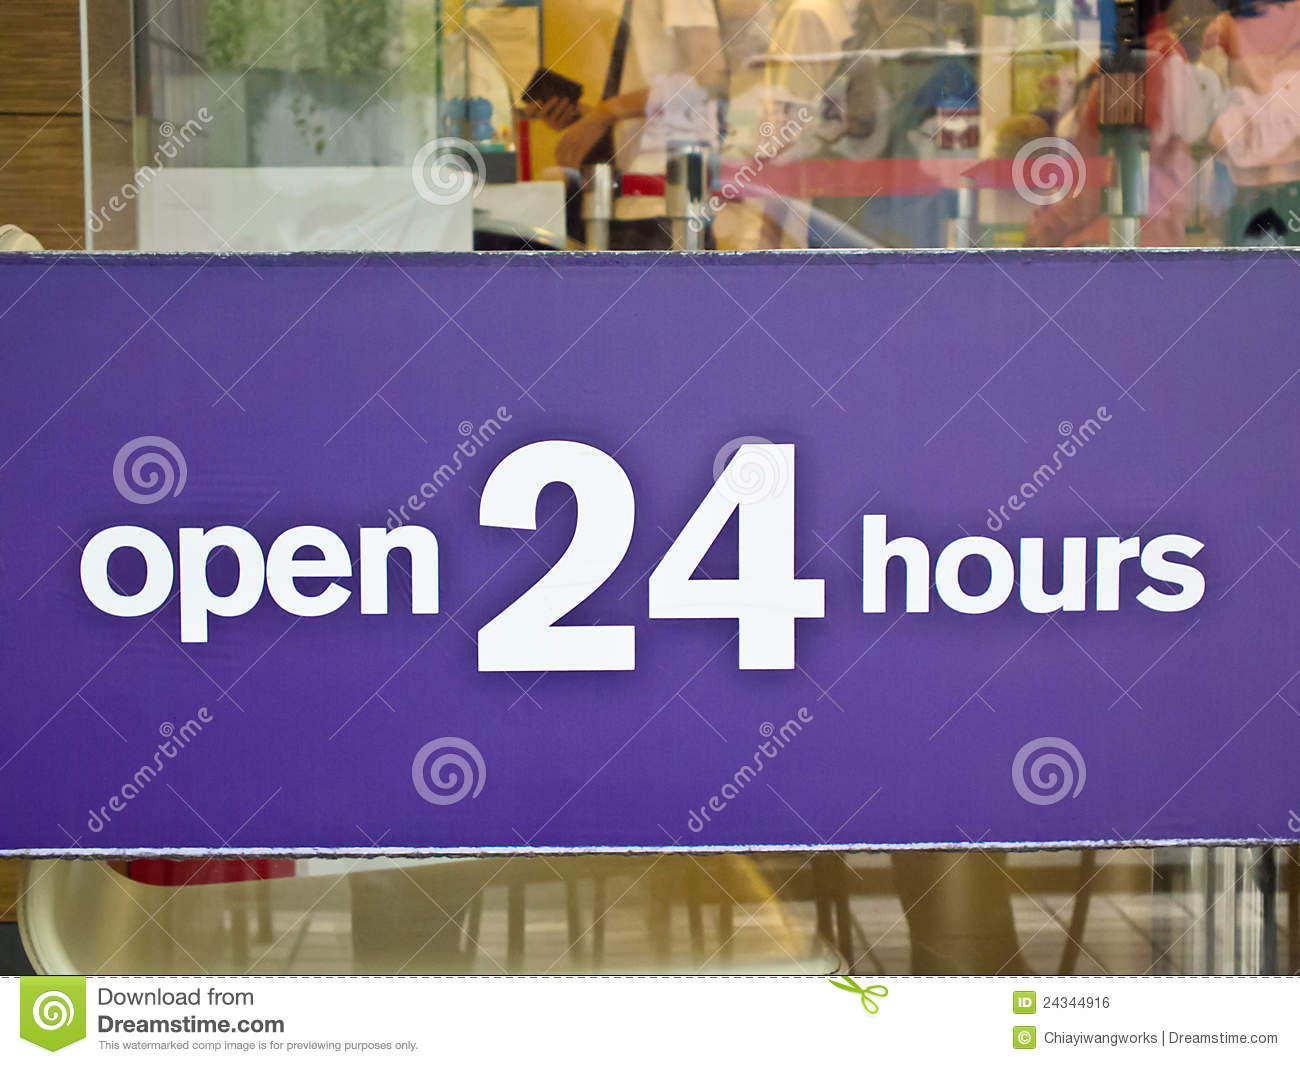 Clothing stores. Clothing stores open 24 hours